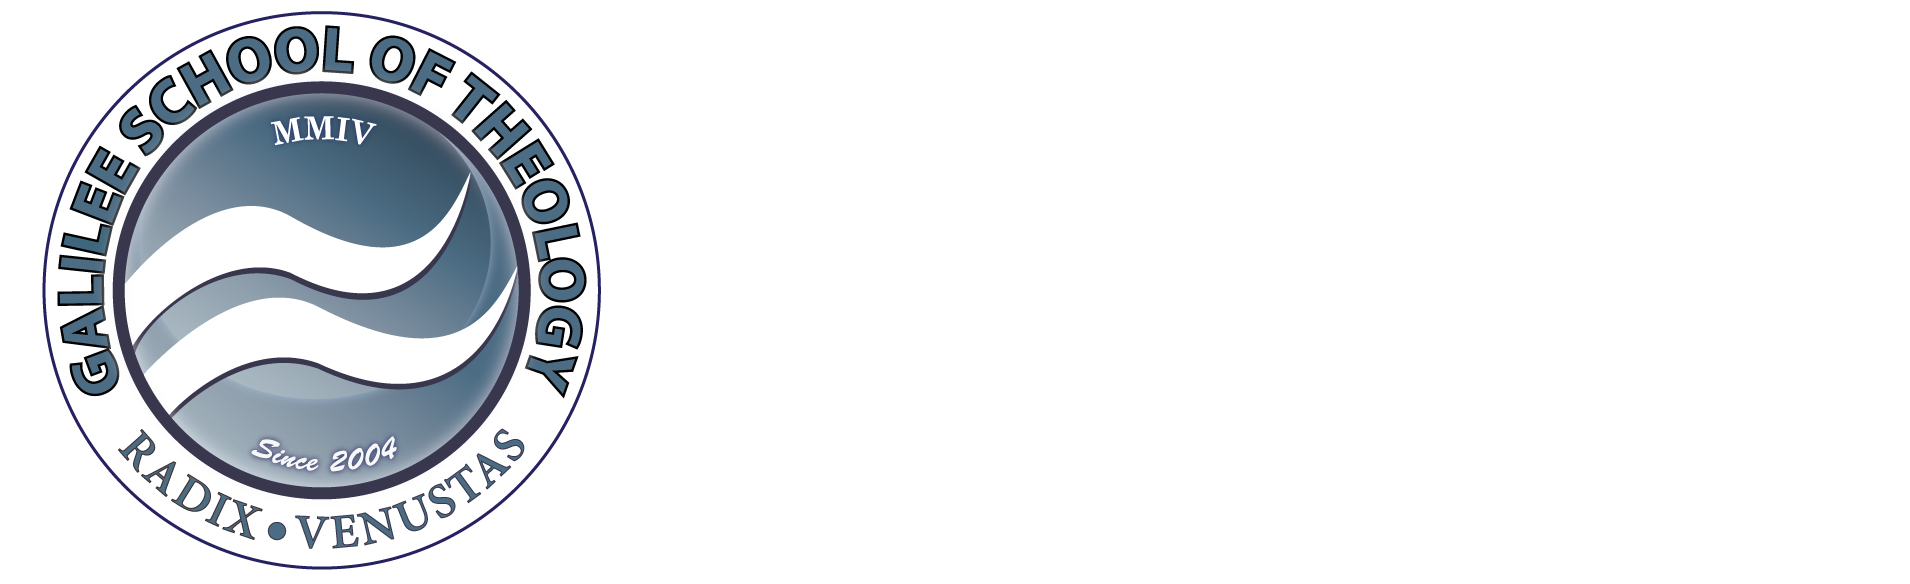 Galilee School of Theology